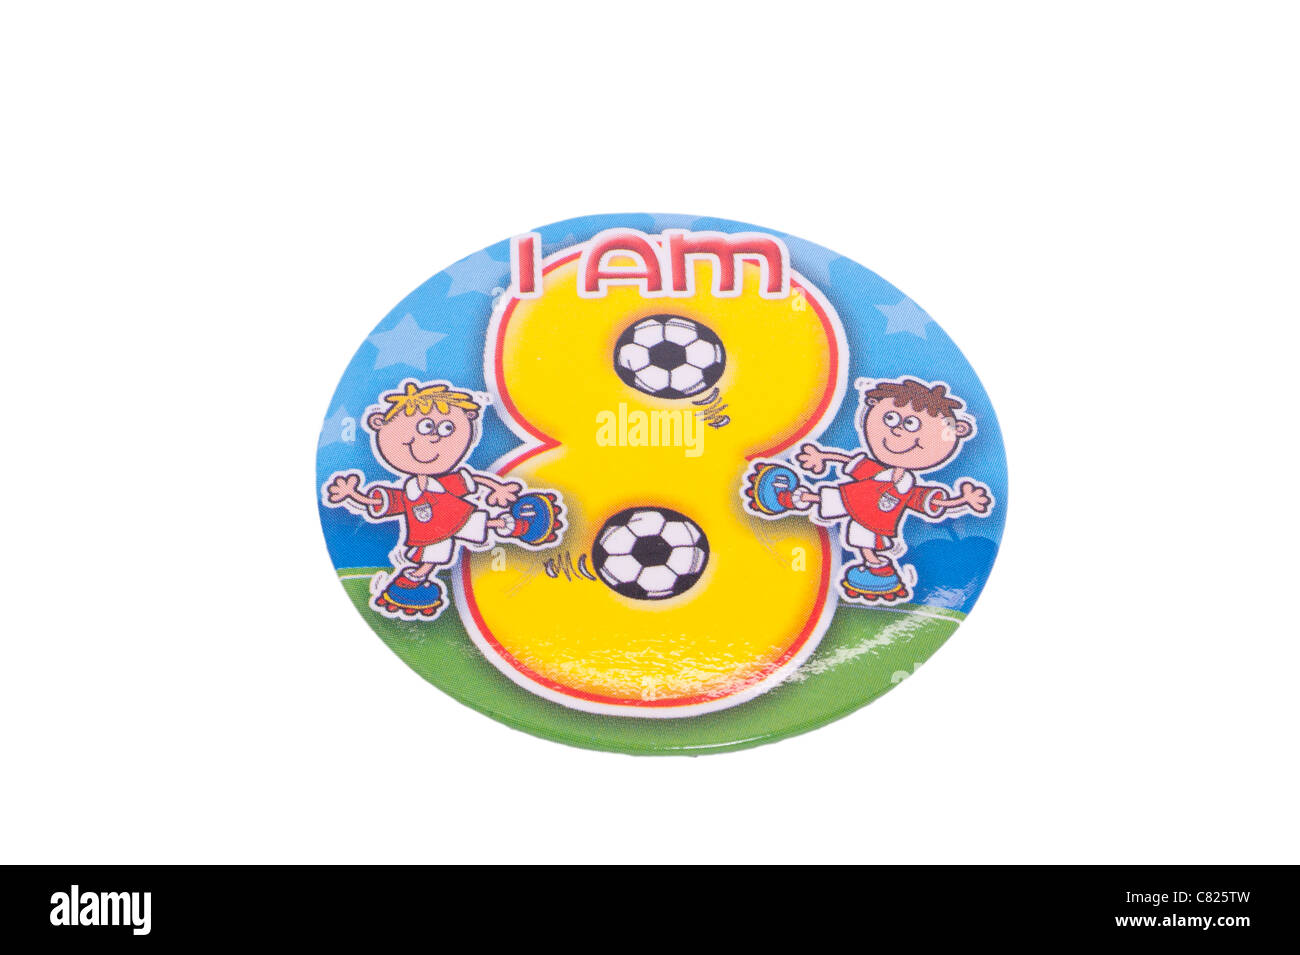 A birthday badge for an eight year old on a white background - Stock Image